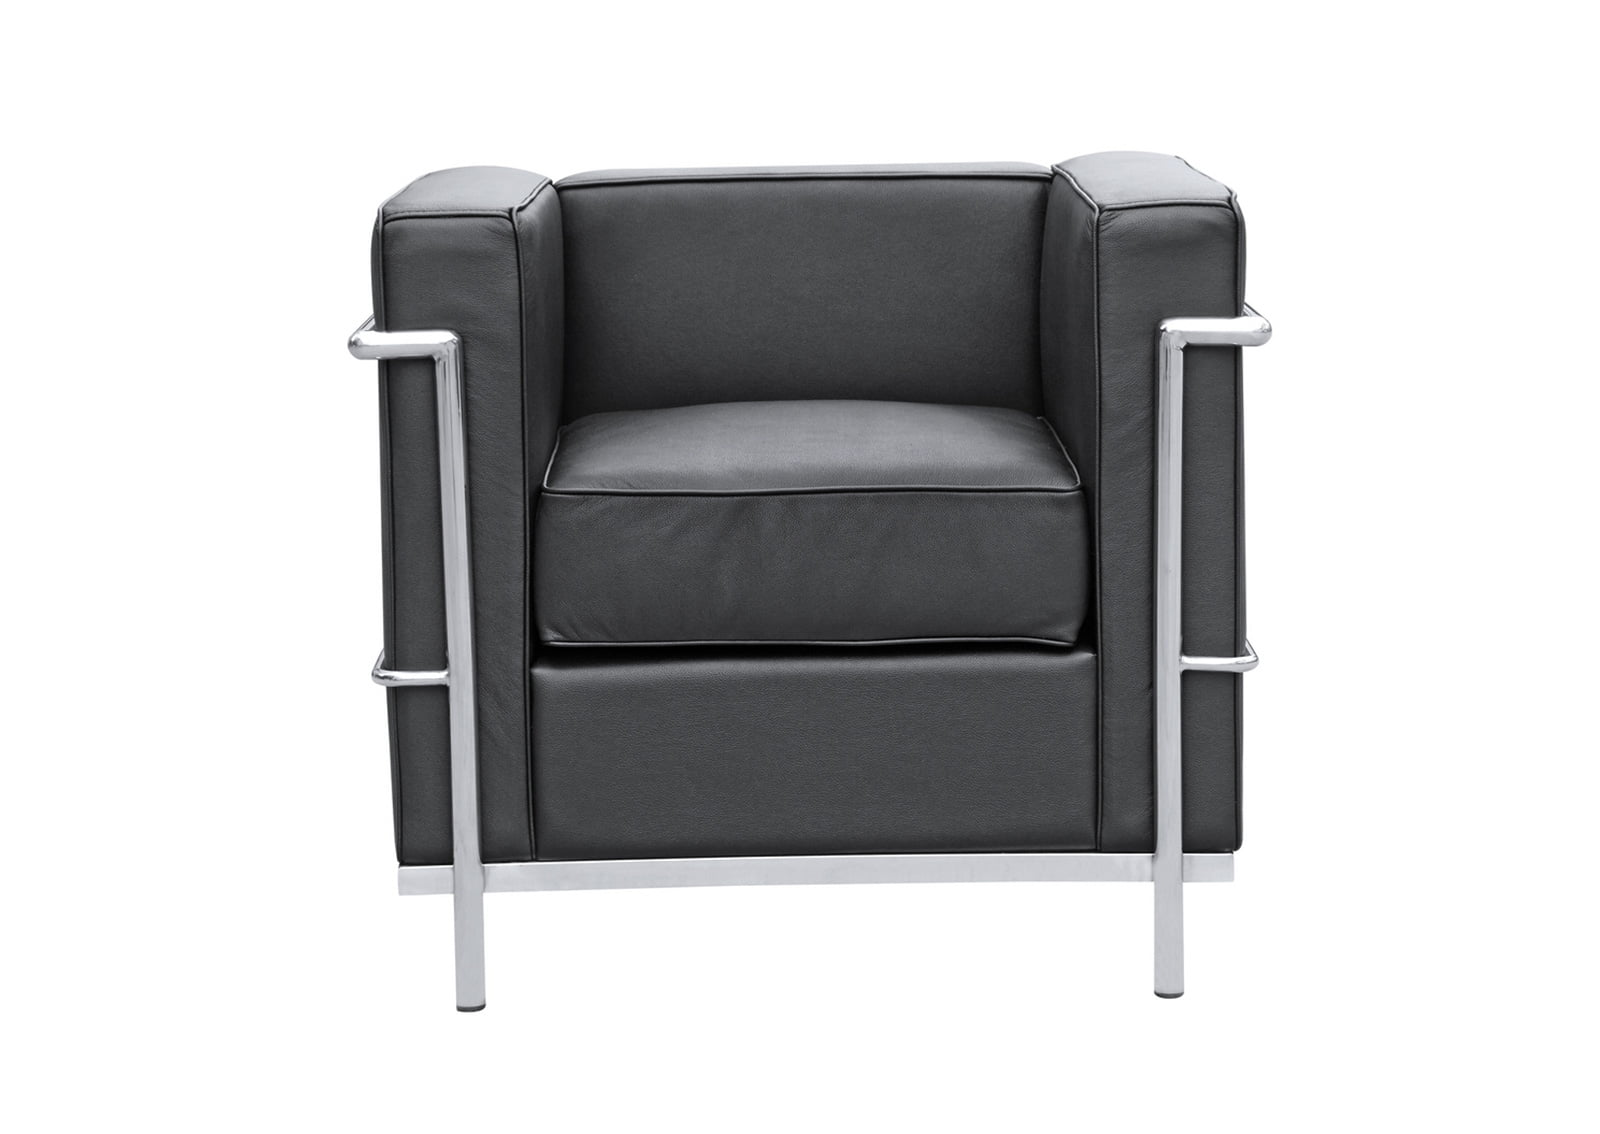 Lc2 Chair